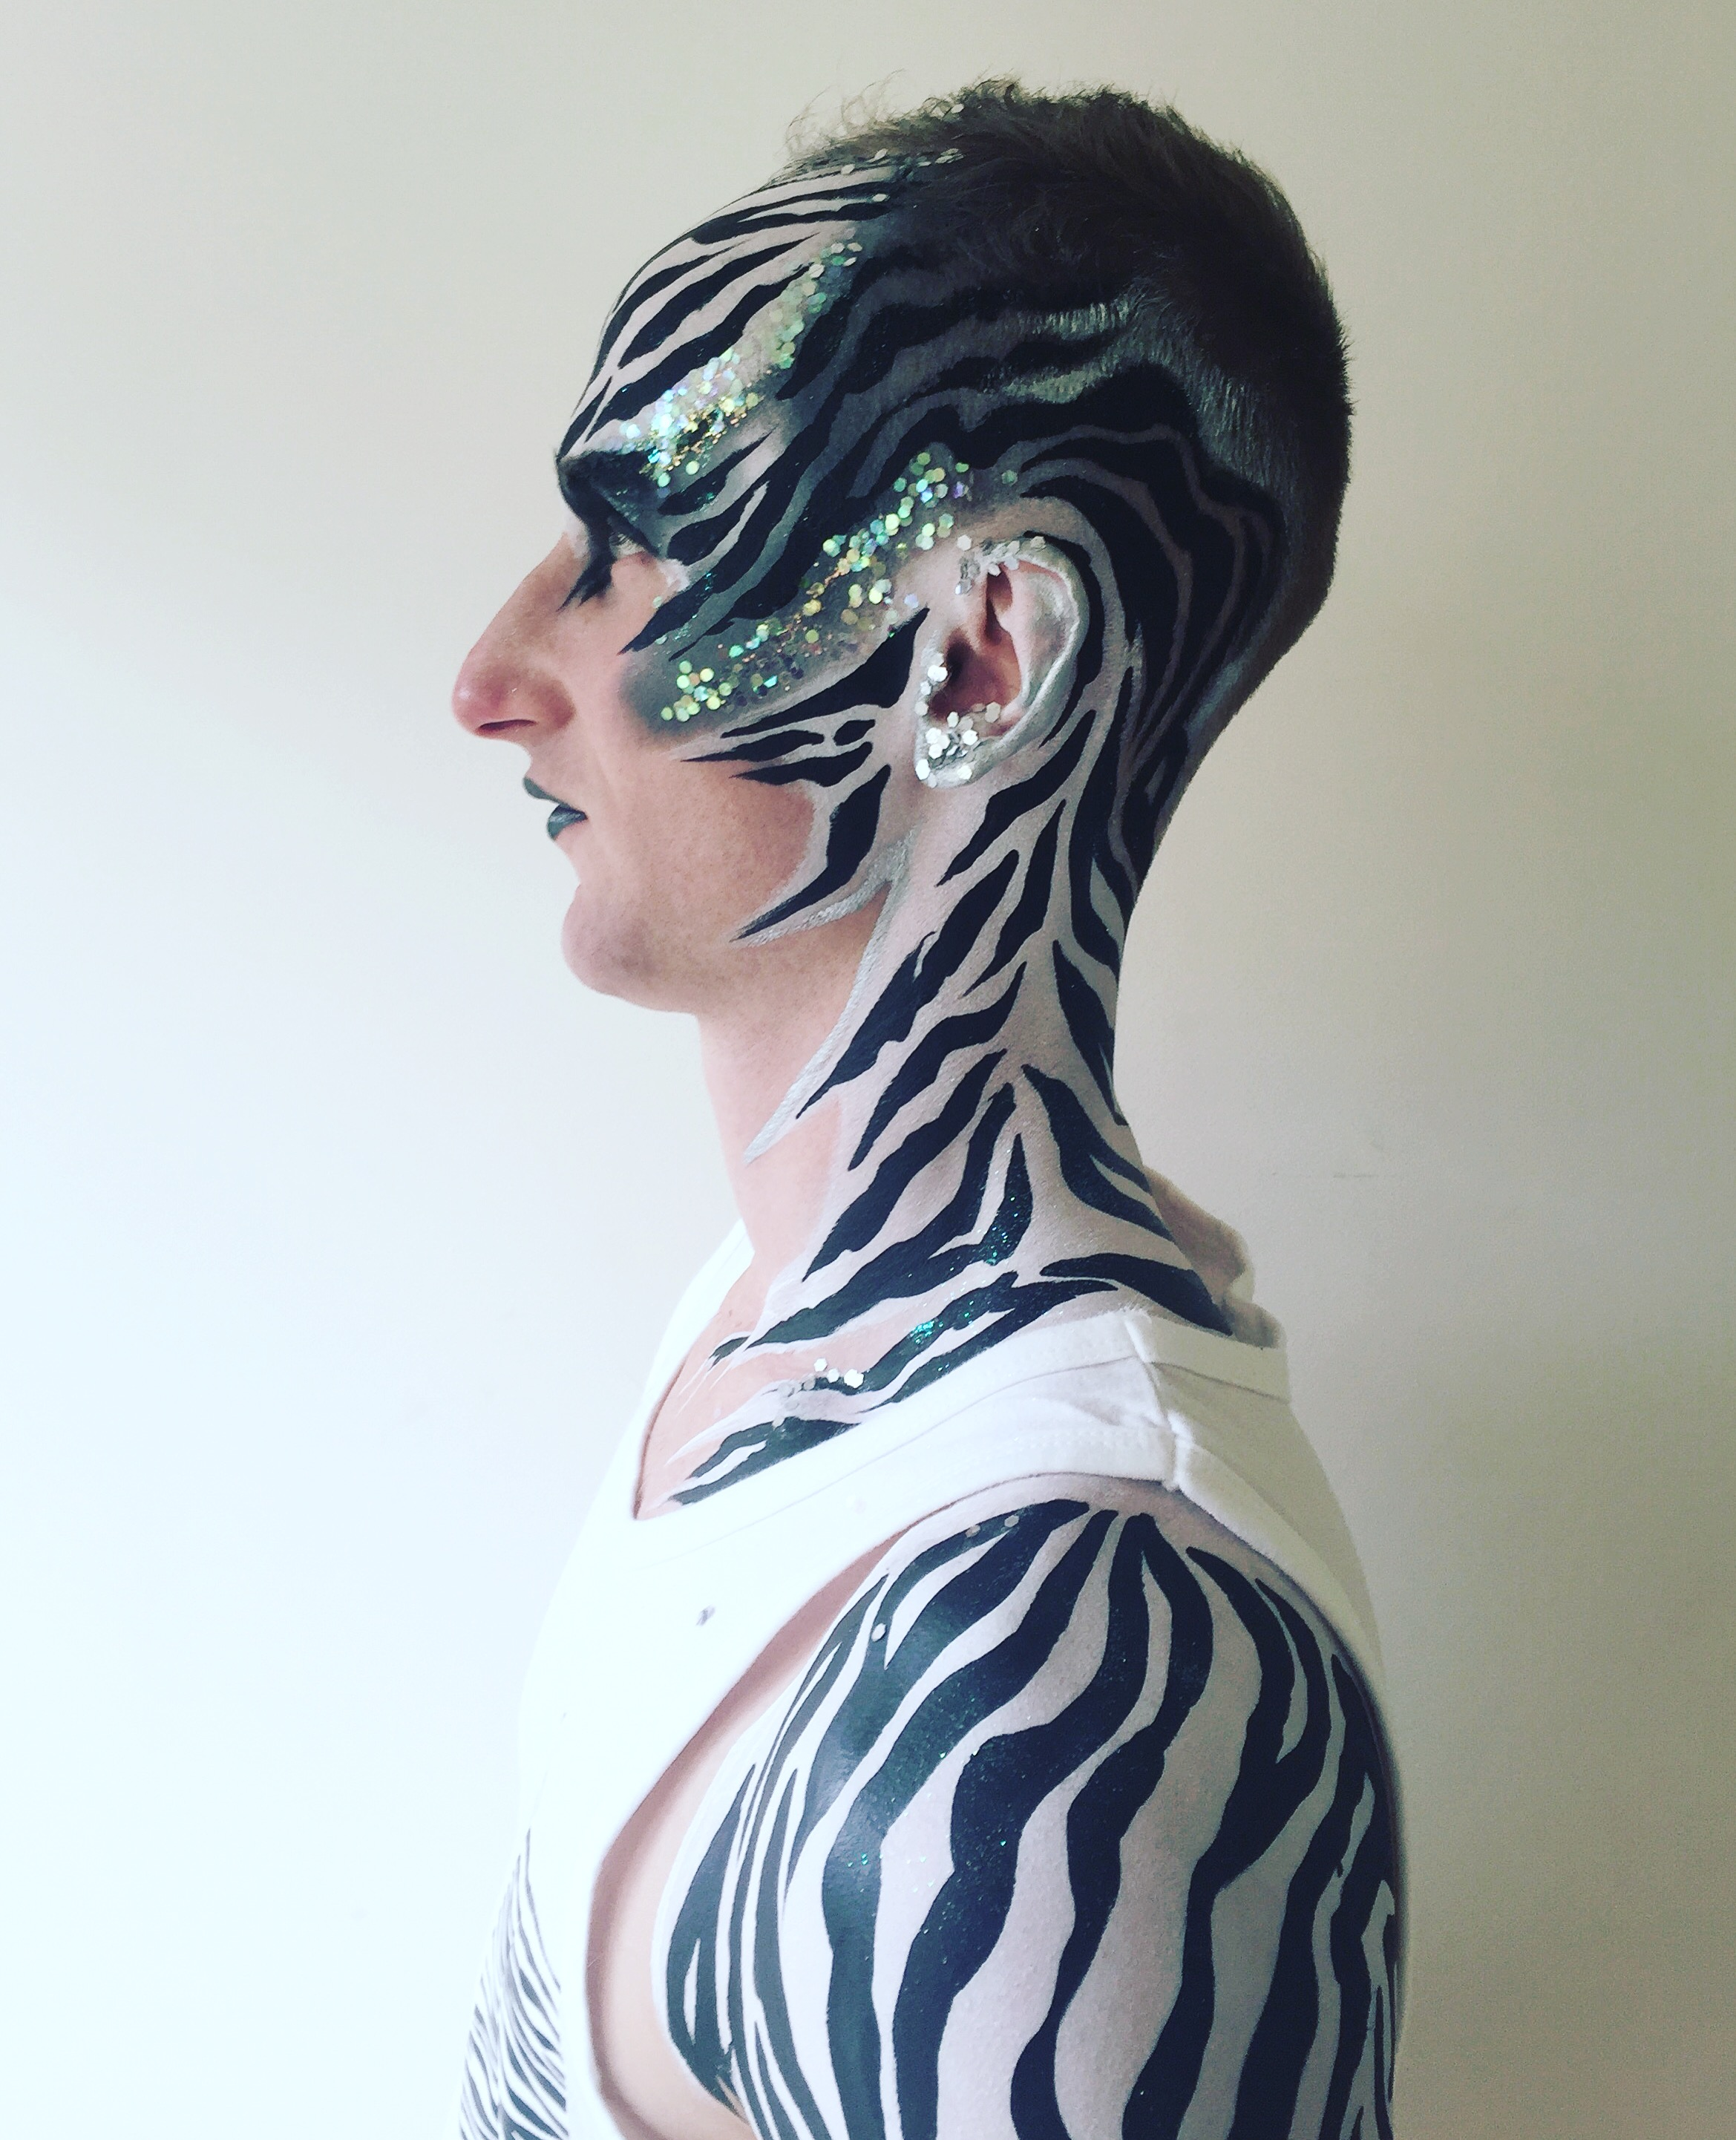 Booking Agent For Brierley Face Body Painter Contraband Events